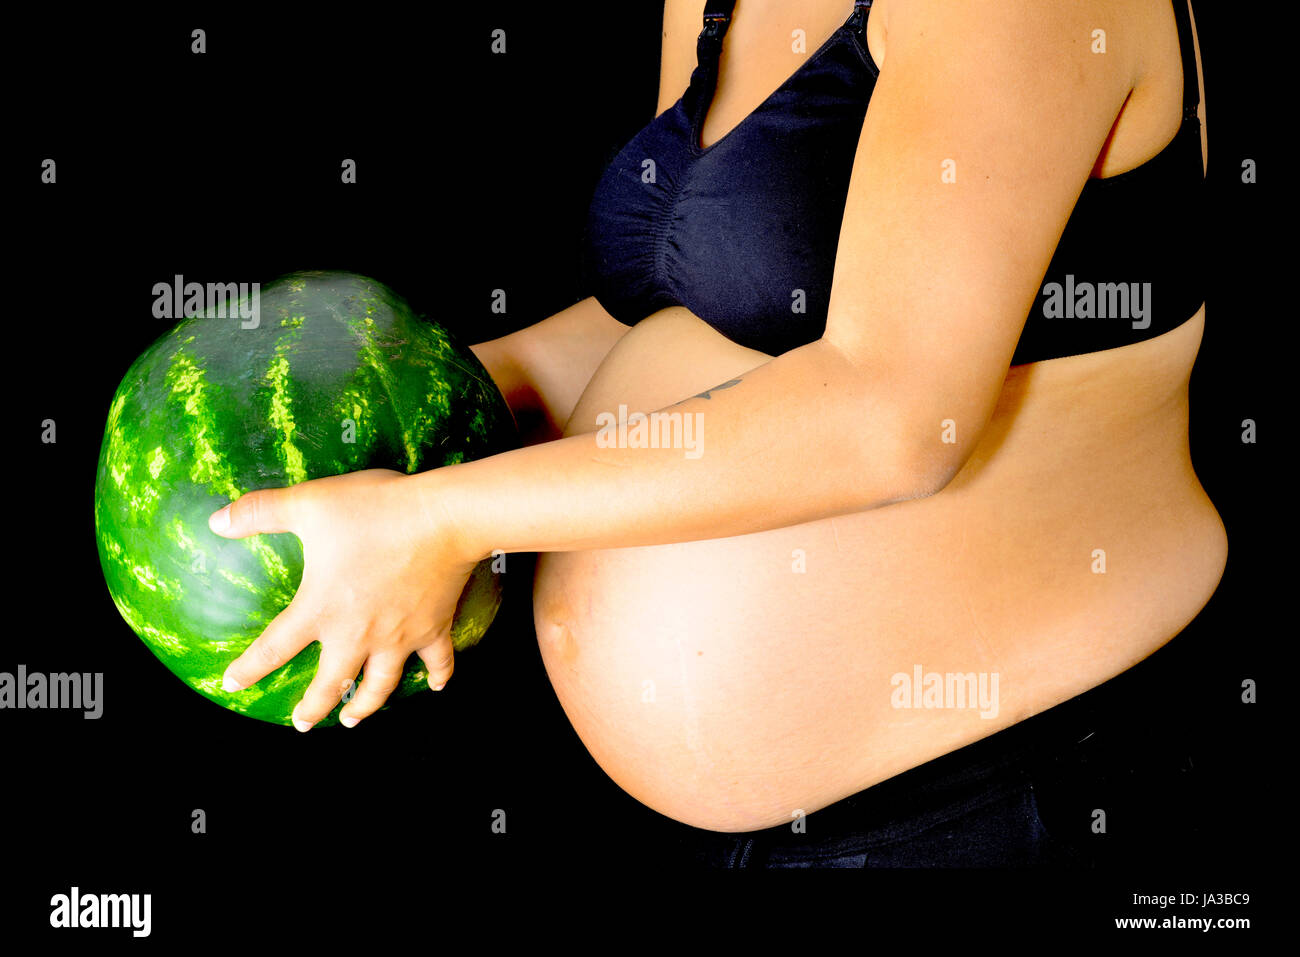 A pregnant woman holding out a huge watermelon in front of her abdomen. Stock Photo